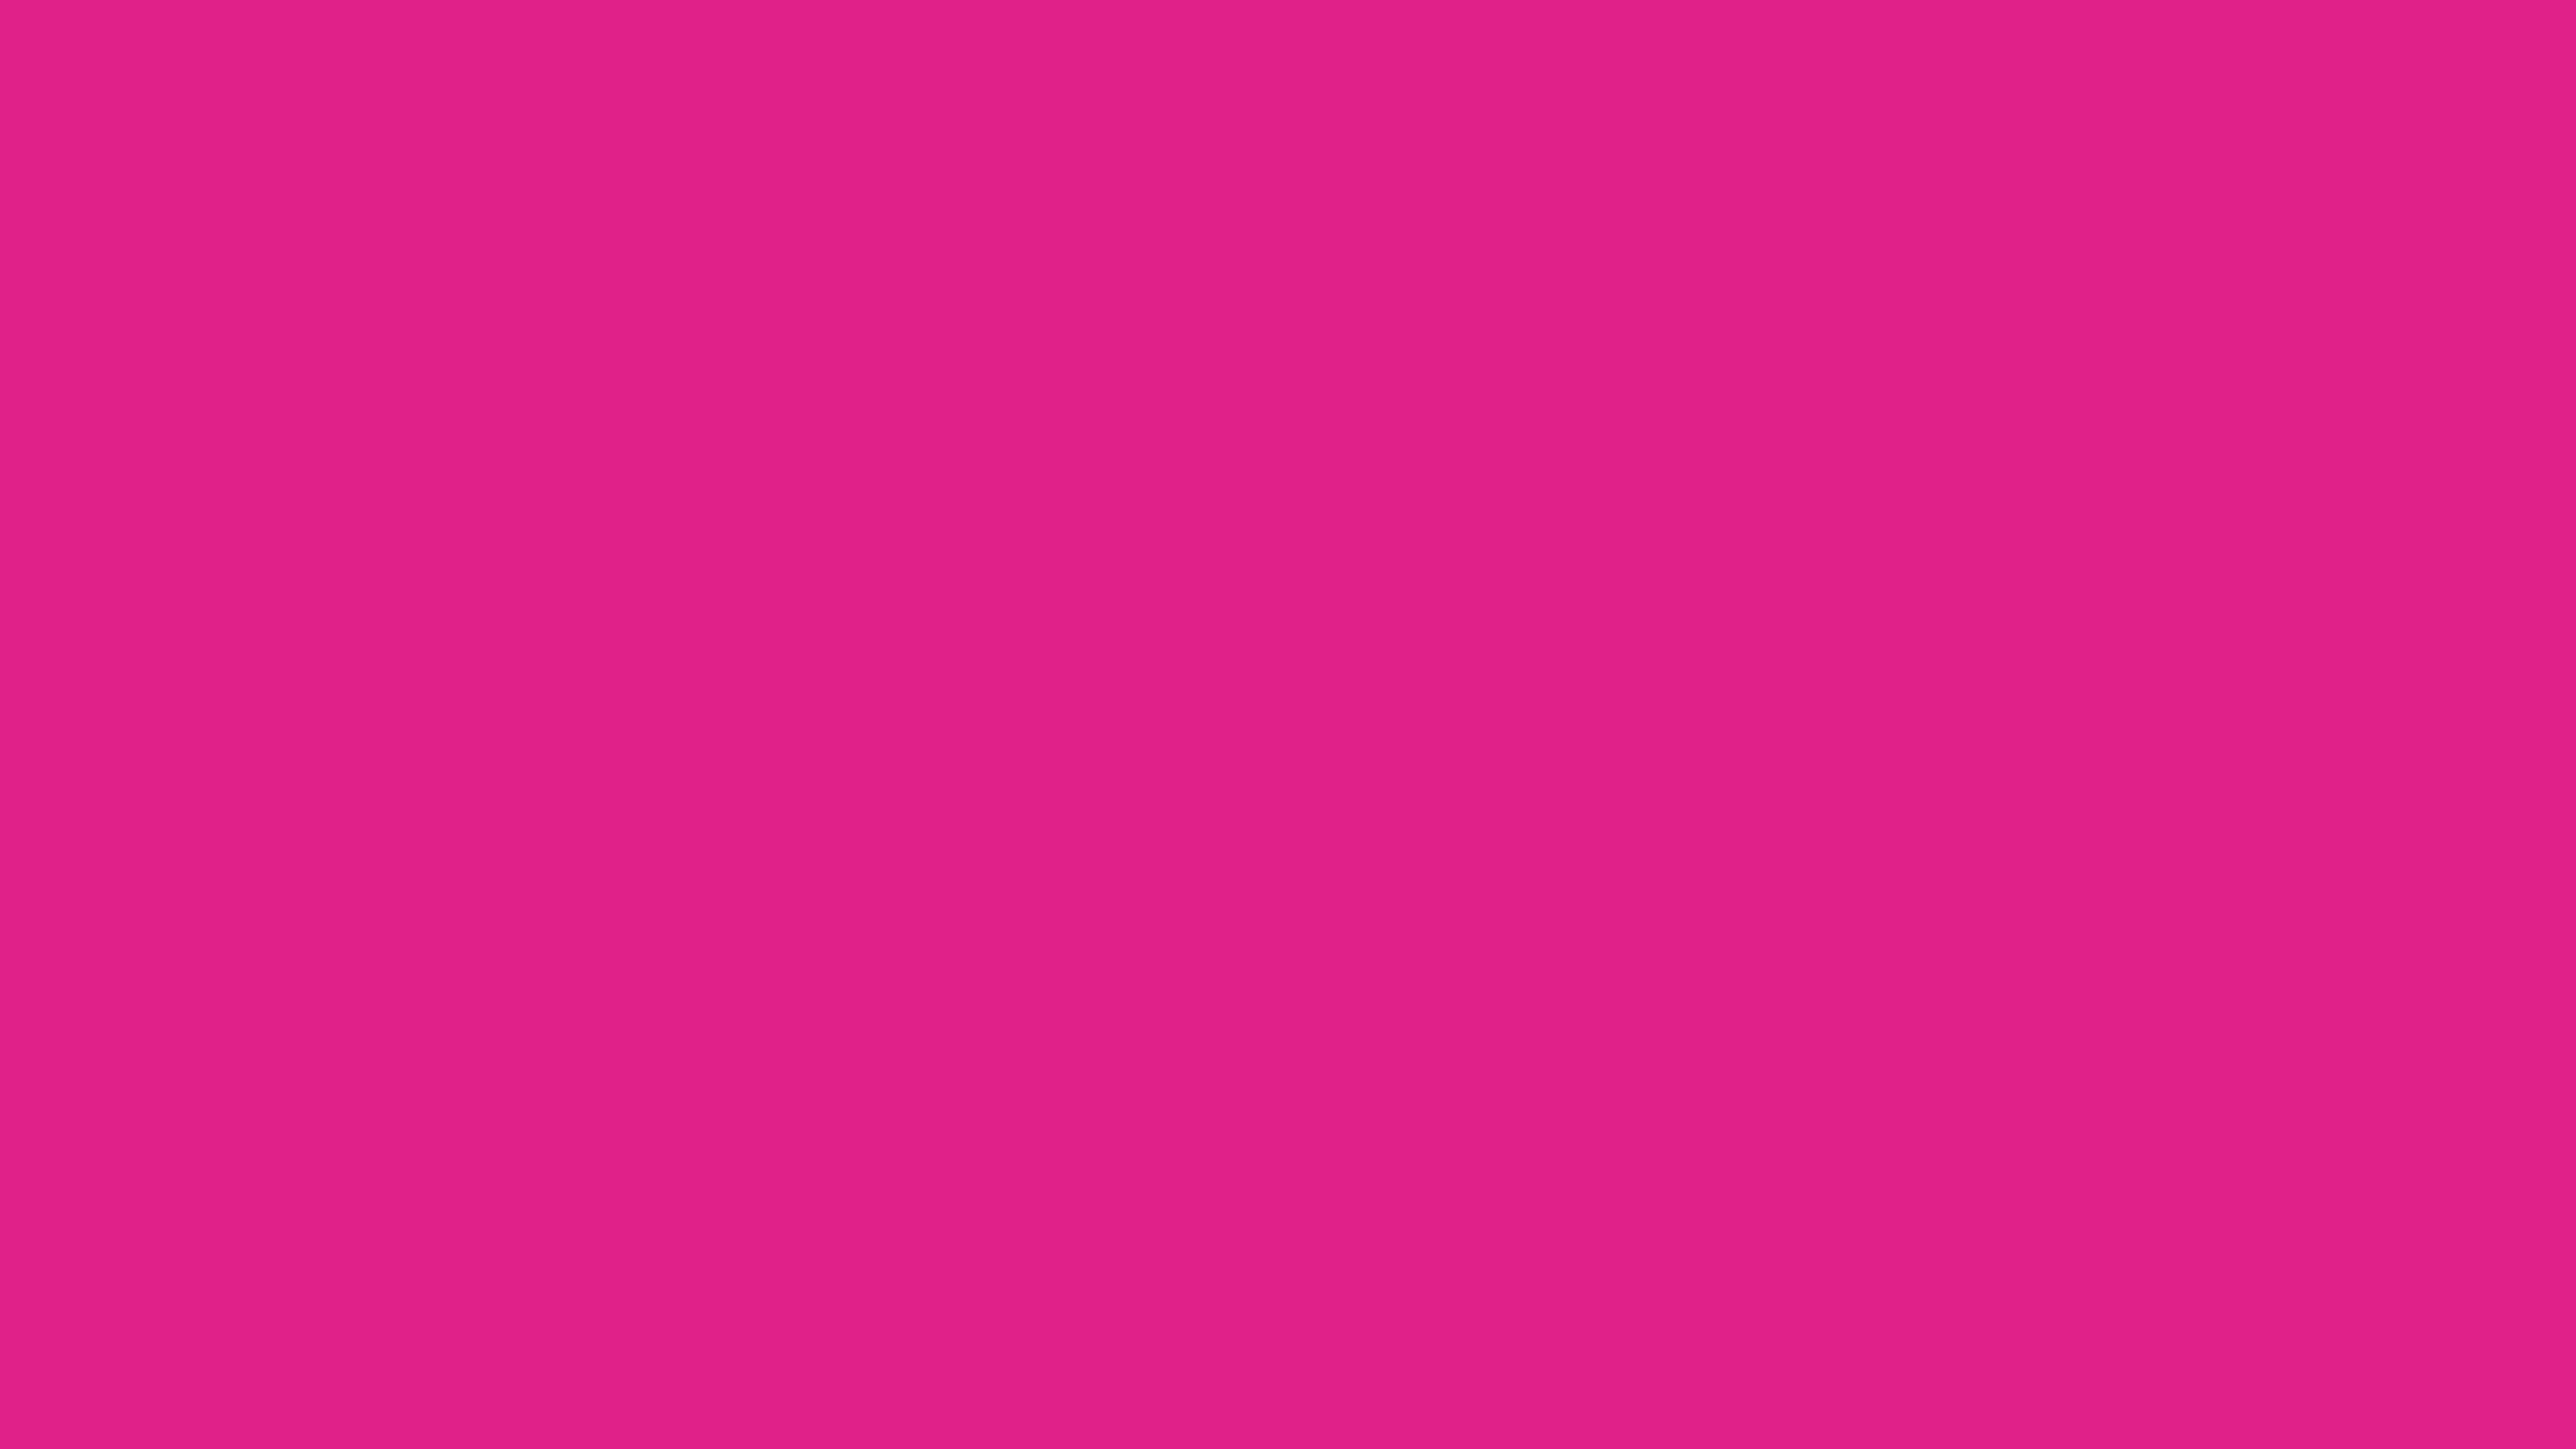 5120x2880 Barbie Pink Solid Color Background